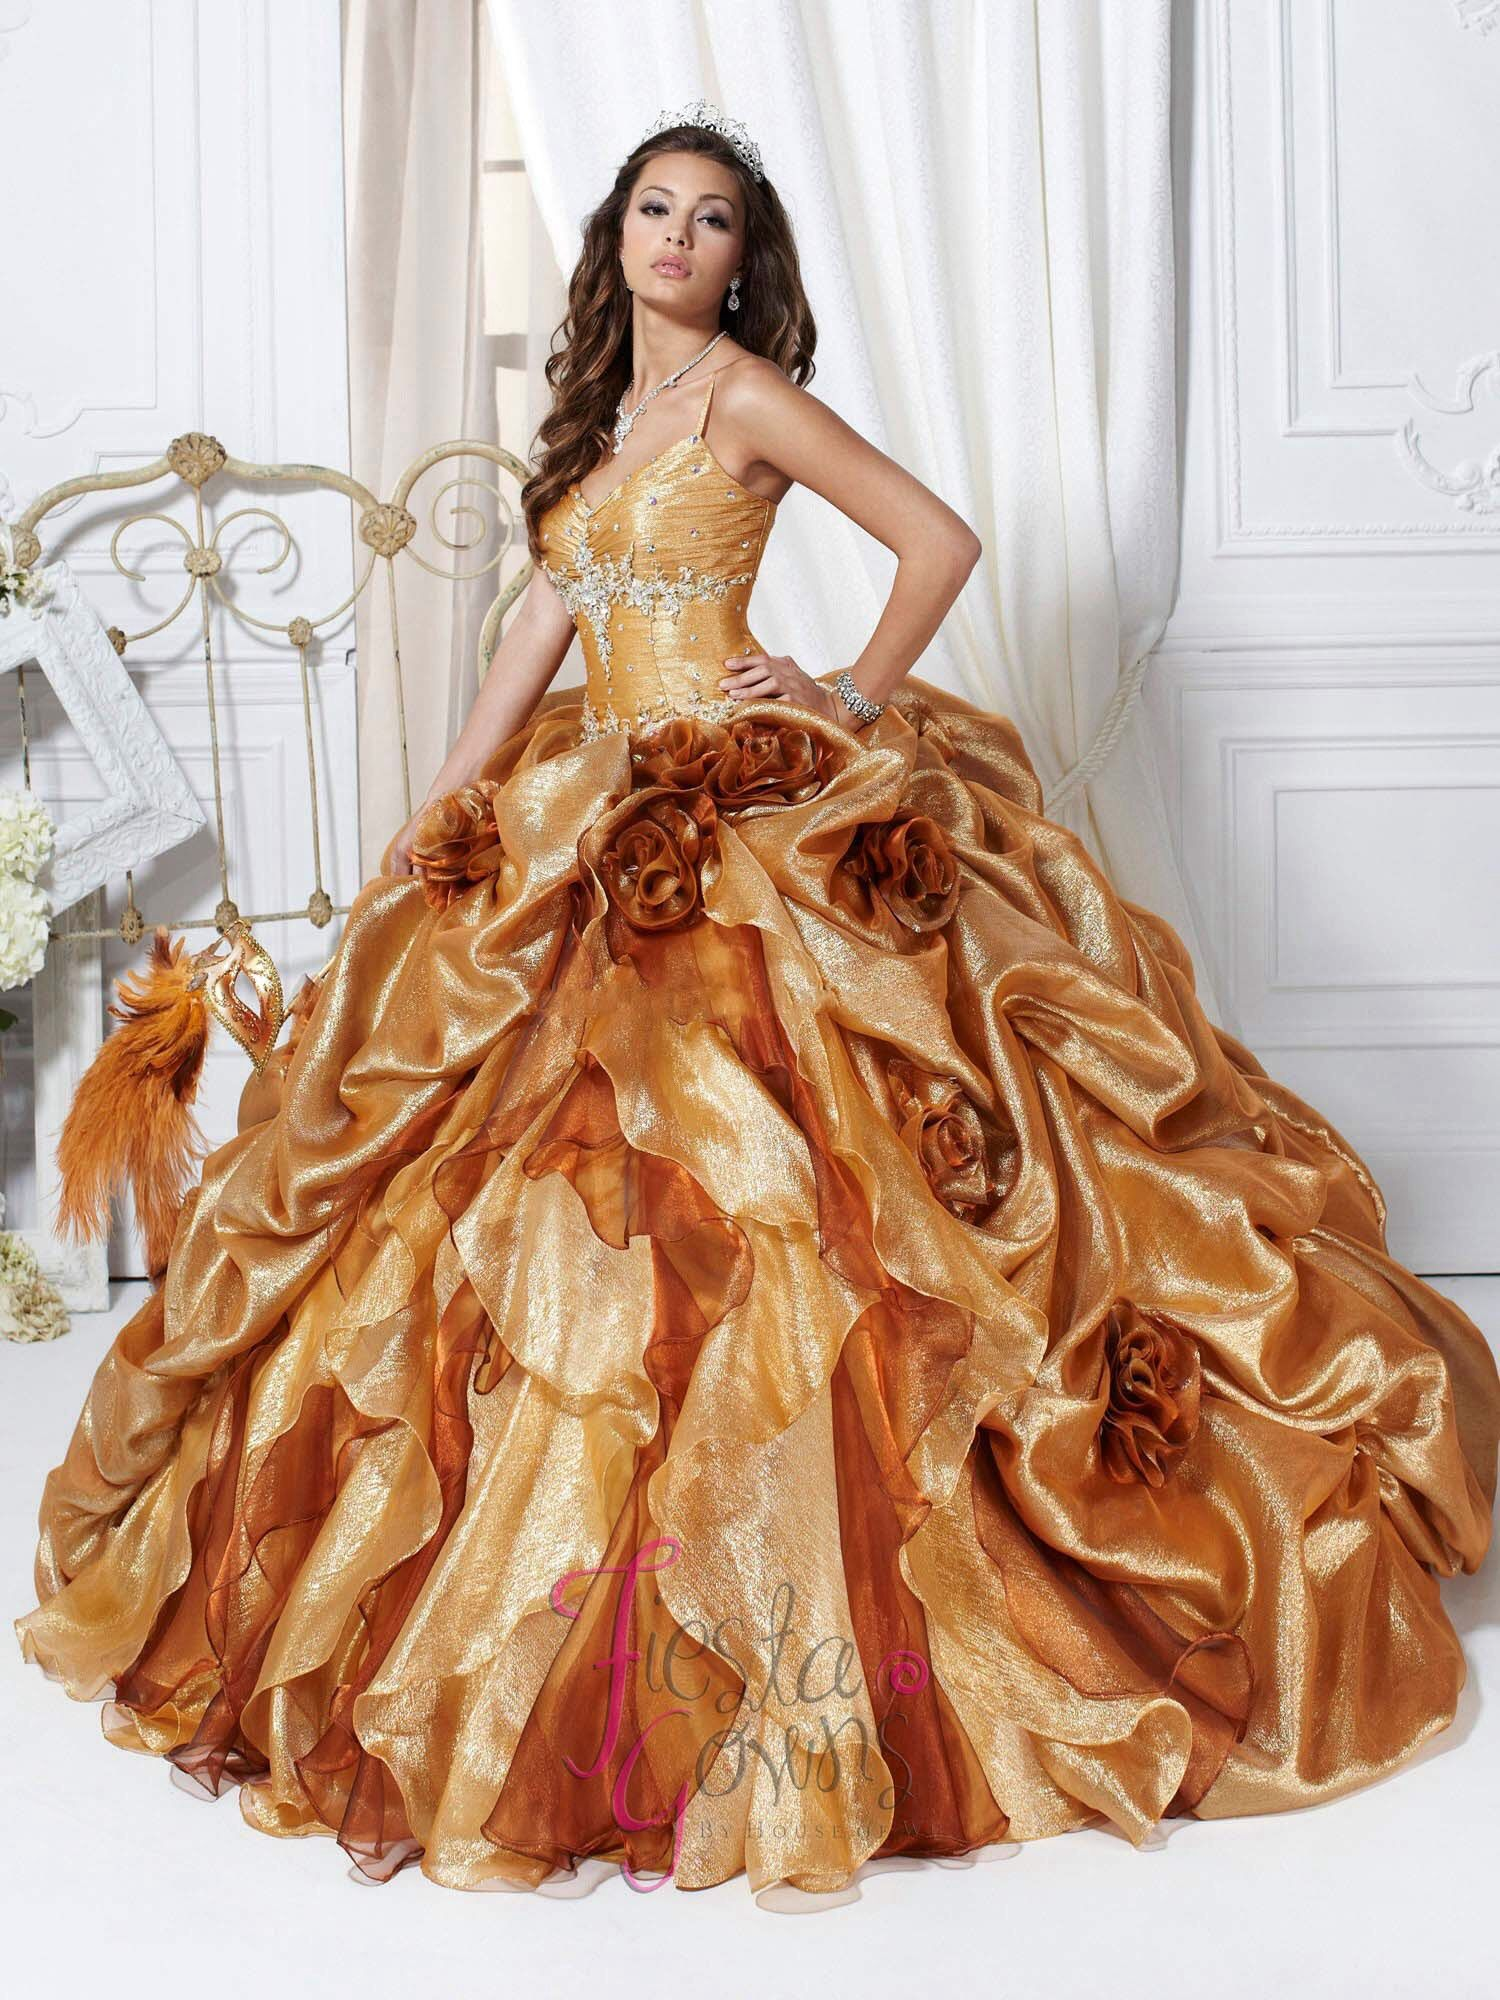 Ball gown~ reminds me of Belle   ) I don t know how easy it is to move  around thought lol 3c7907923